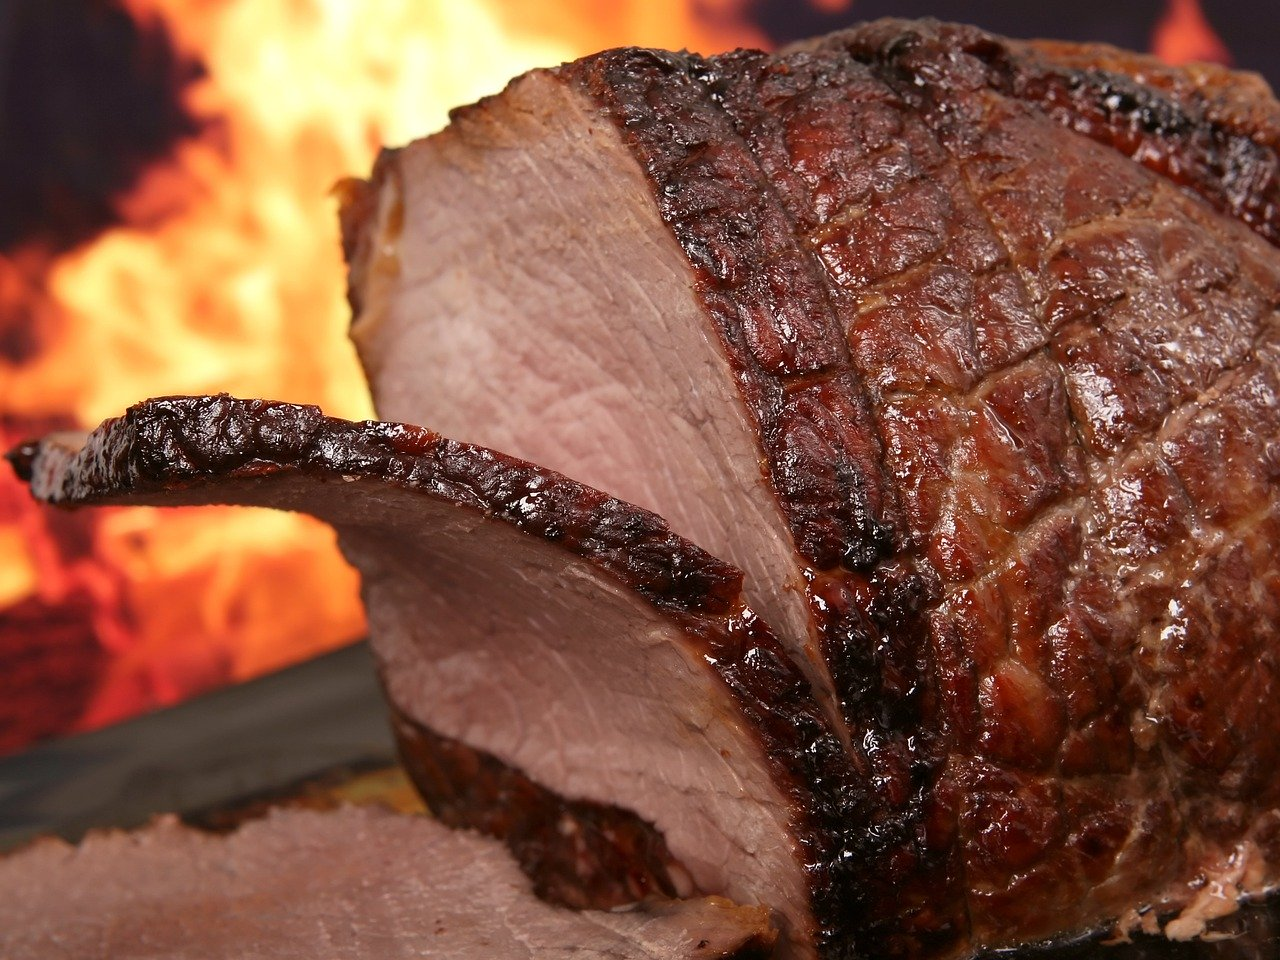 Housse Barbecue : Le top 10